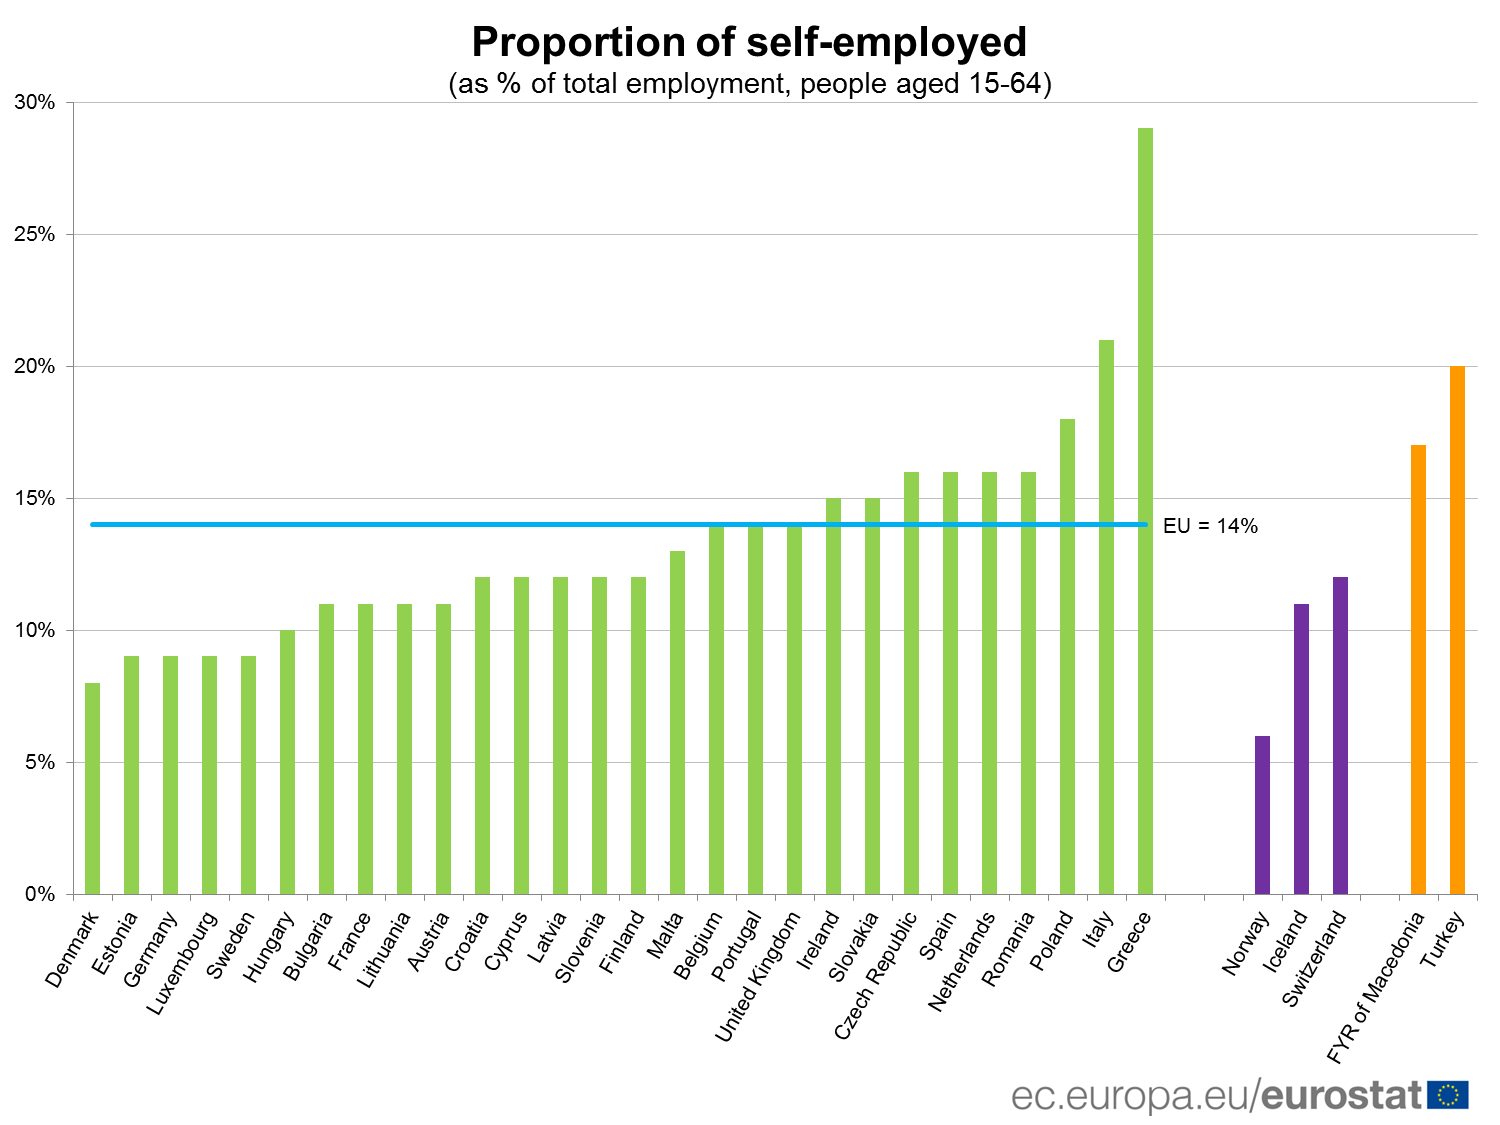 Proportion of self-employment